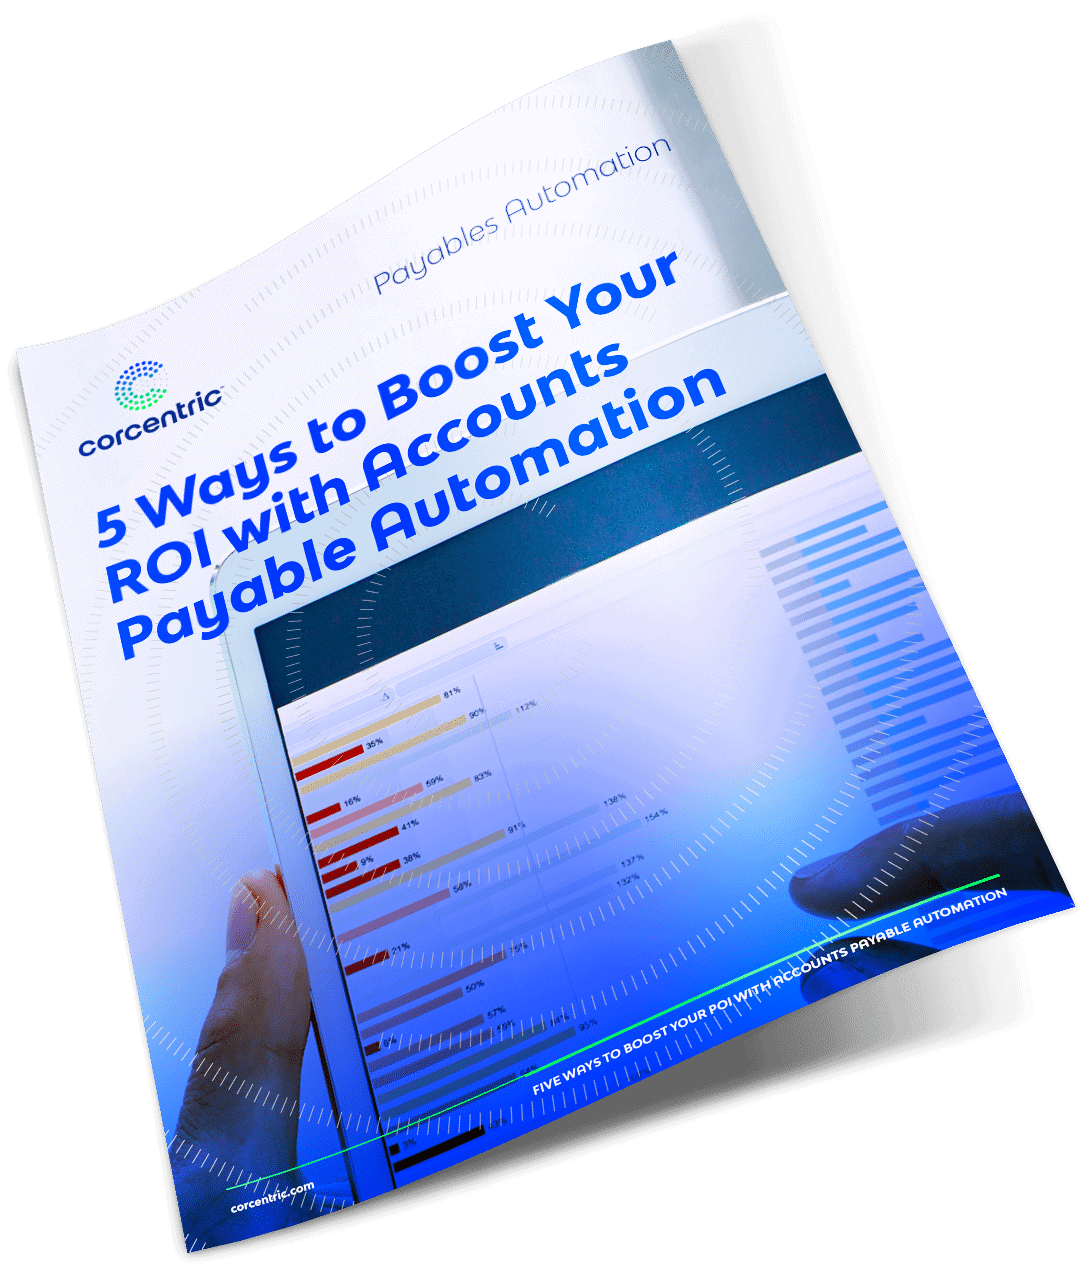 white-paper-guide-5-ways-boost-roi-ap-automation-asset